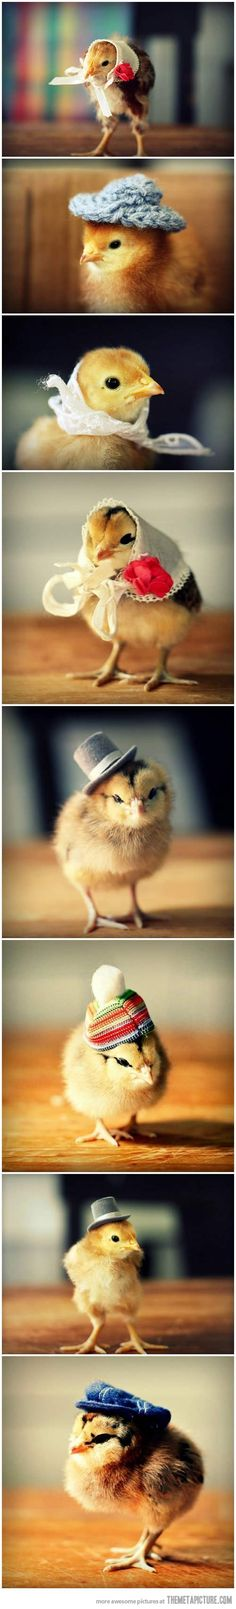 Chicks in hats… funny